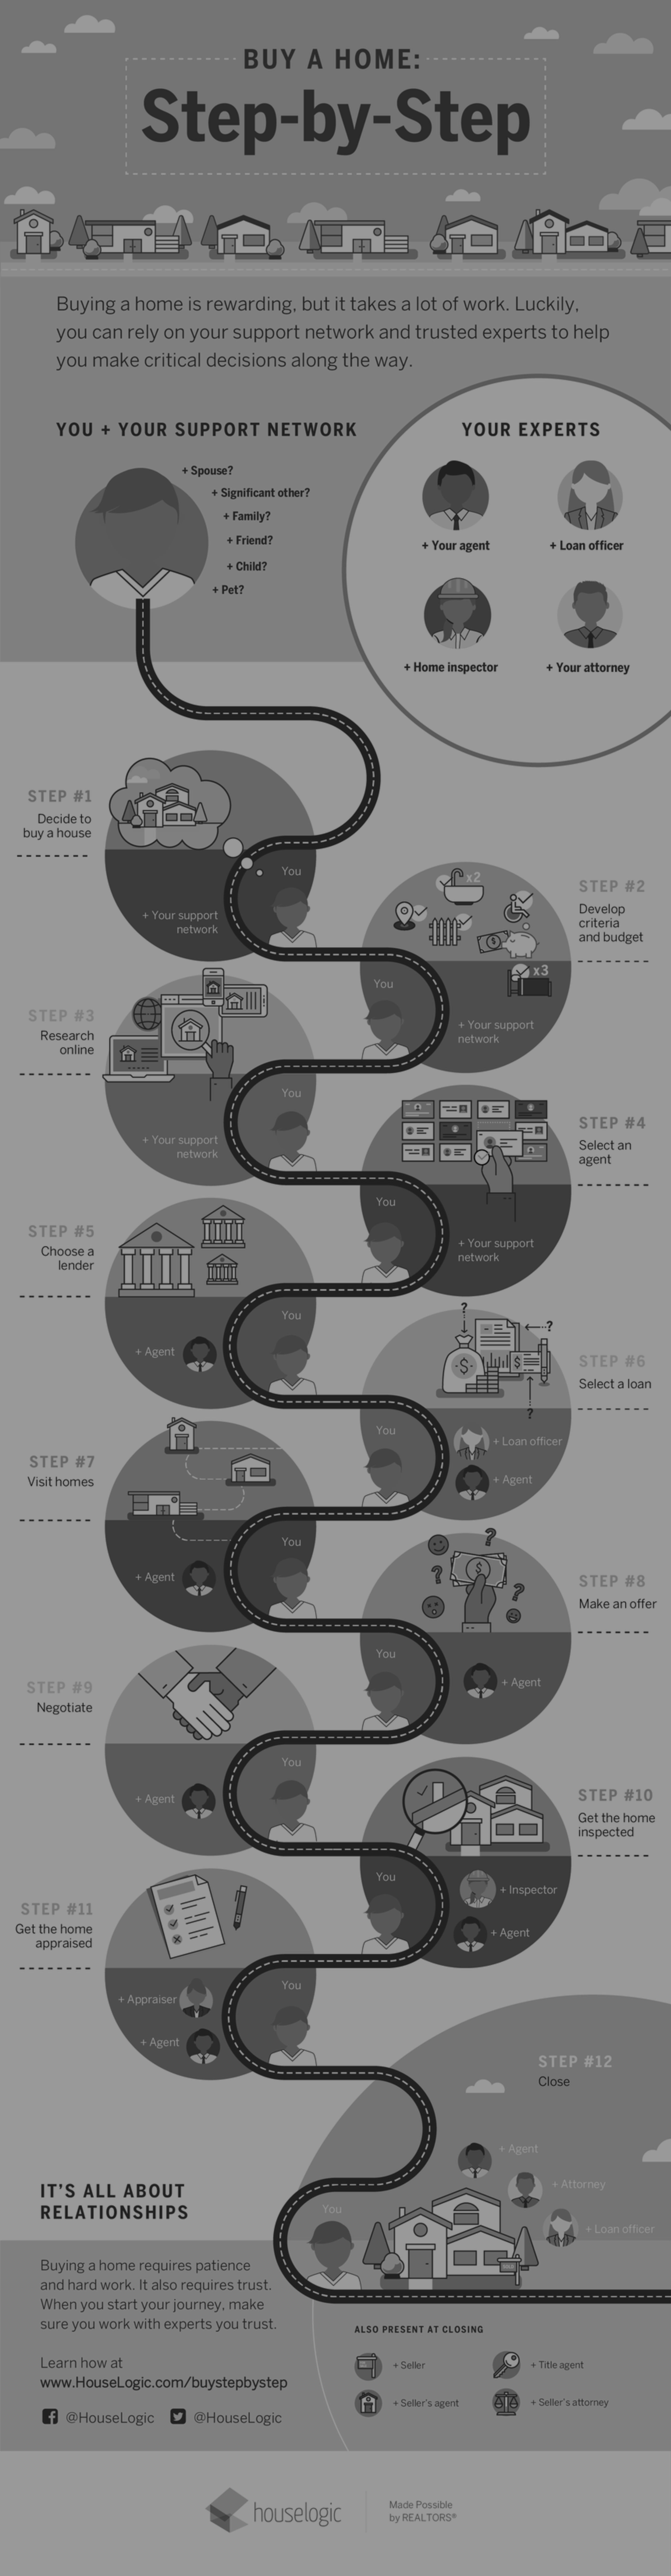 Steps to Buying a Home